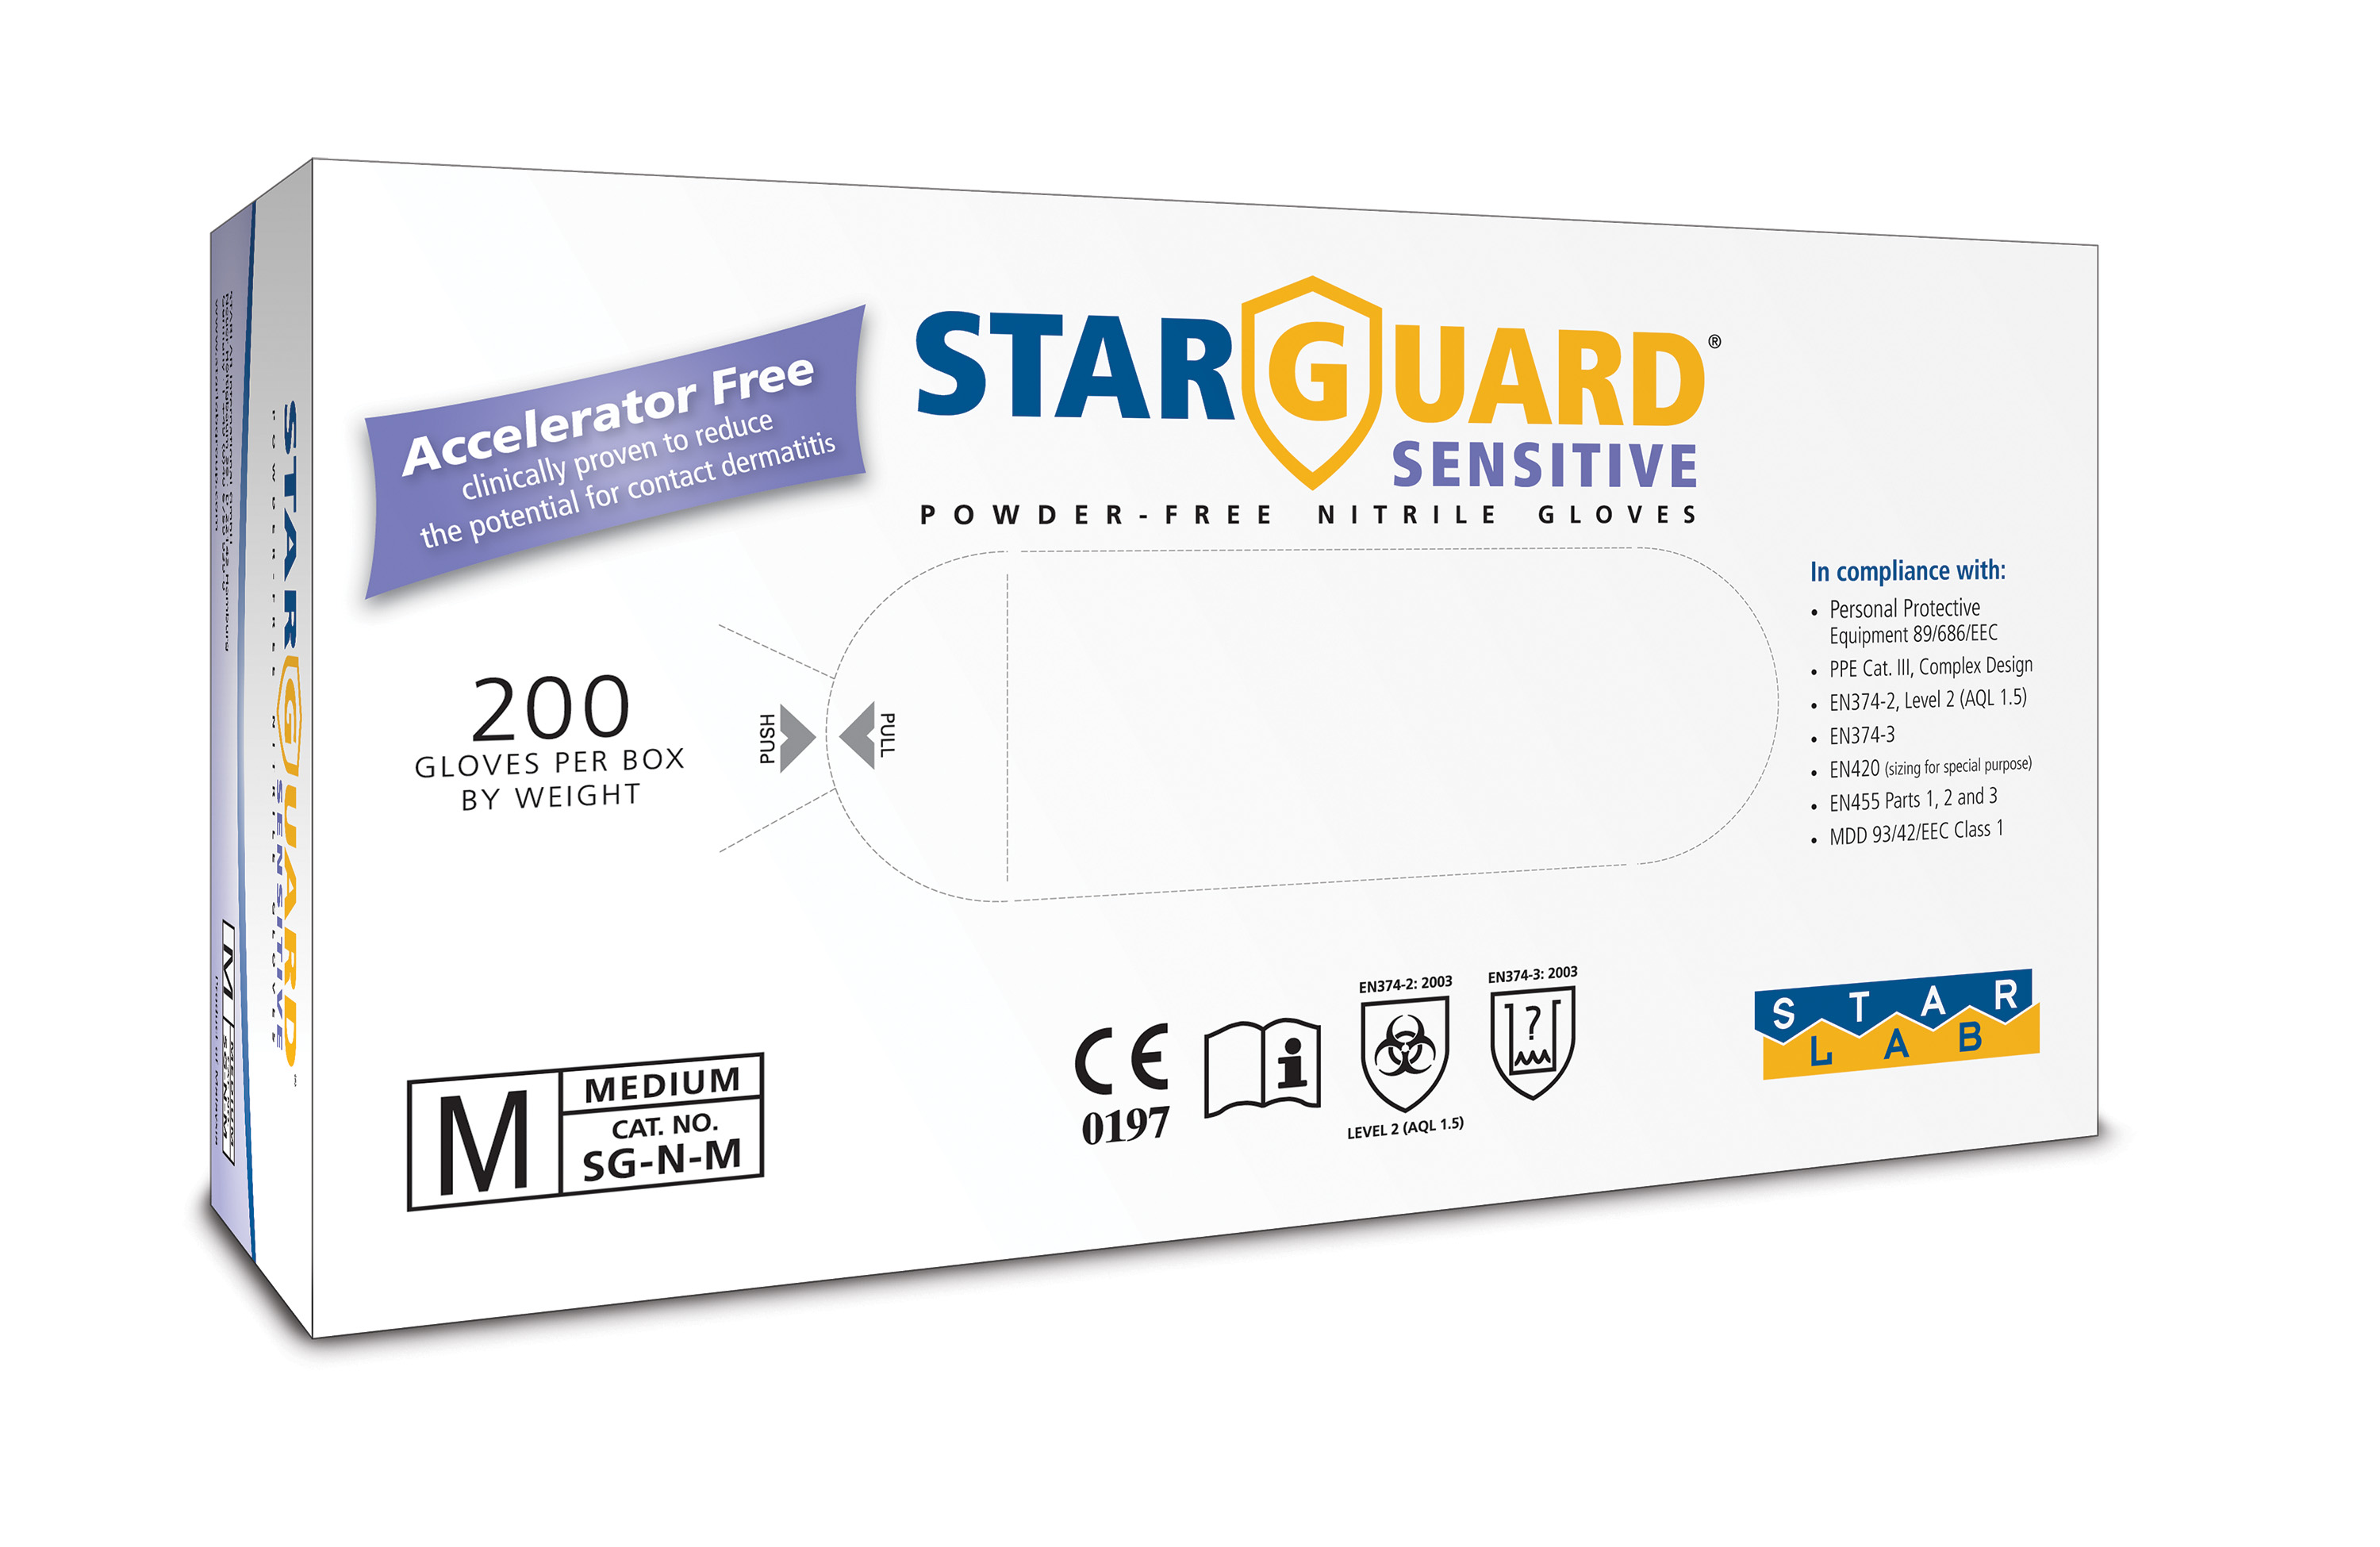 StarGuard SENSITIVE Nitrile Gloves, Powder Free, Blue, Size XL, Pk/ 10 x 200 gloves